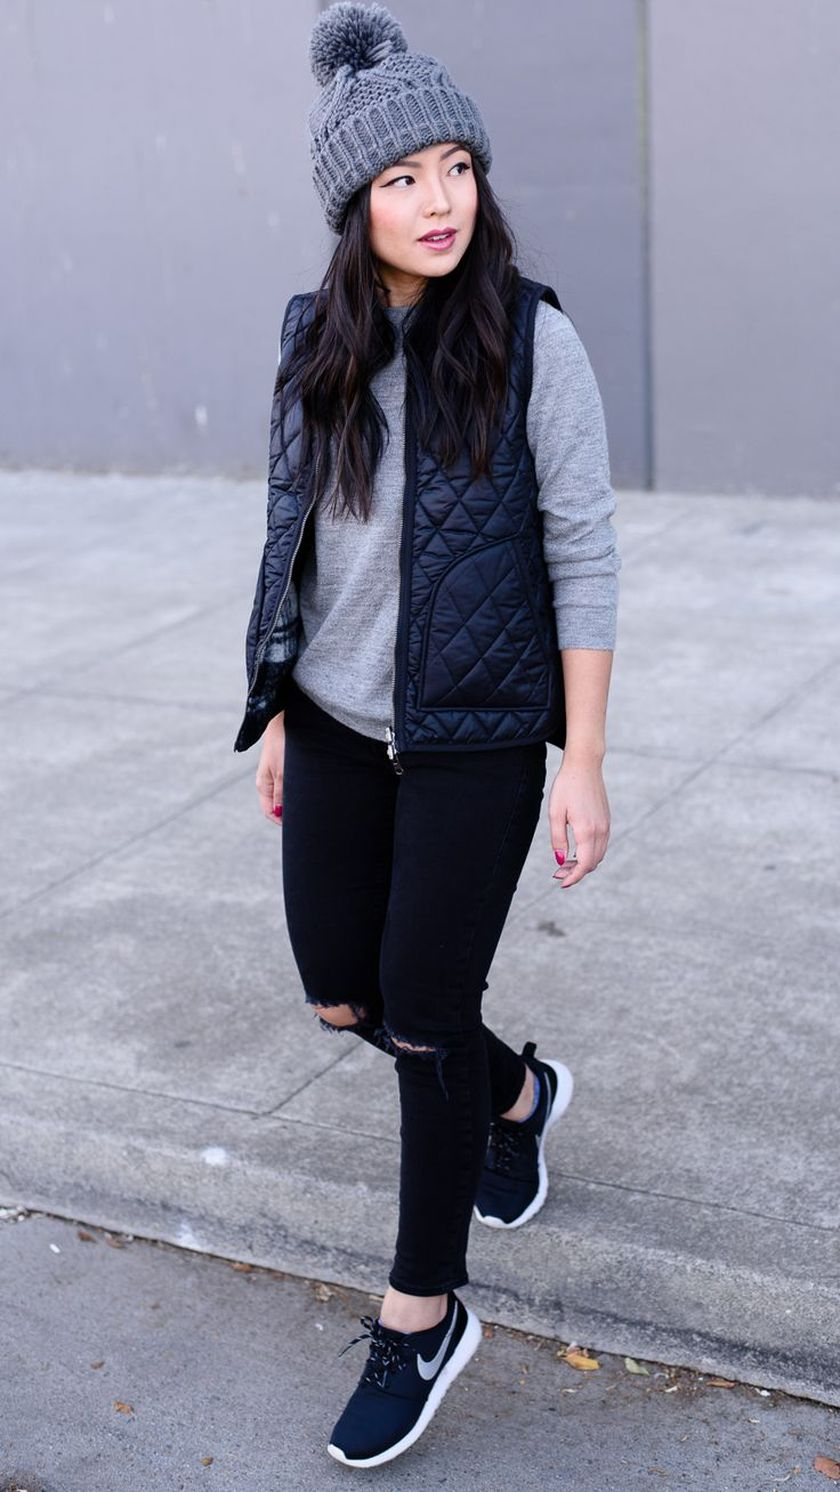 Sporty black leggings outfit and sneakers 16